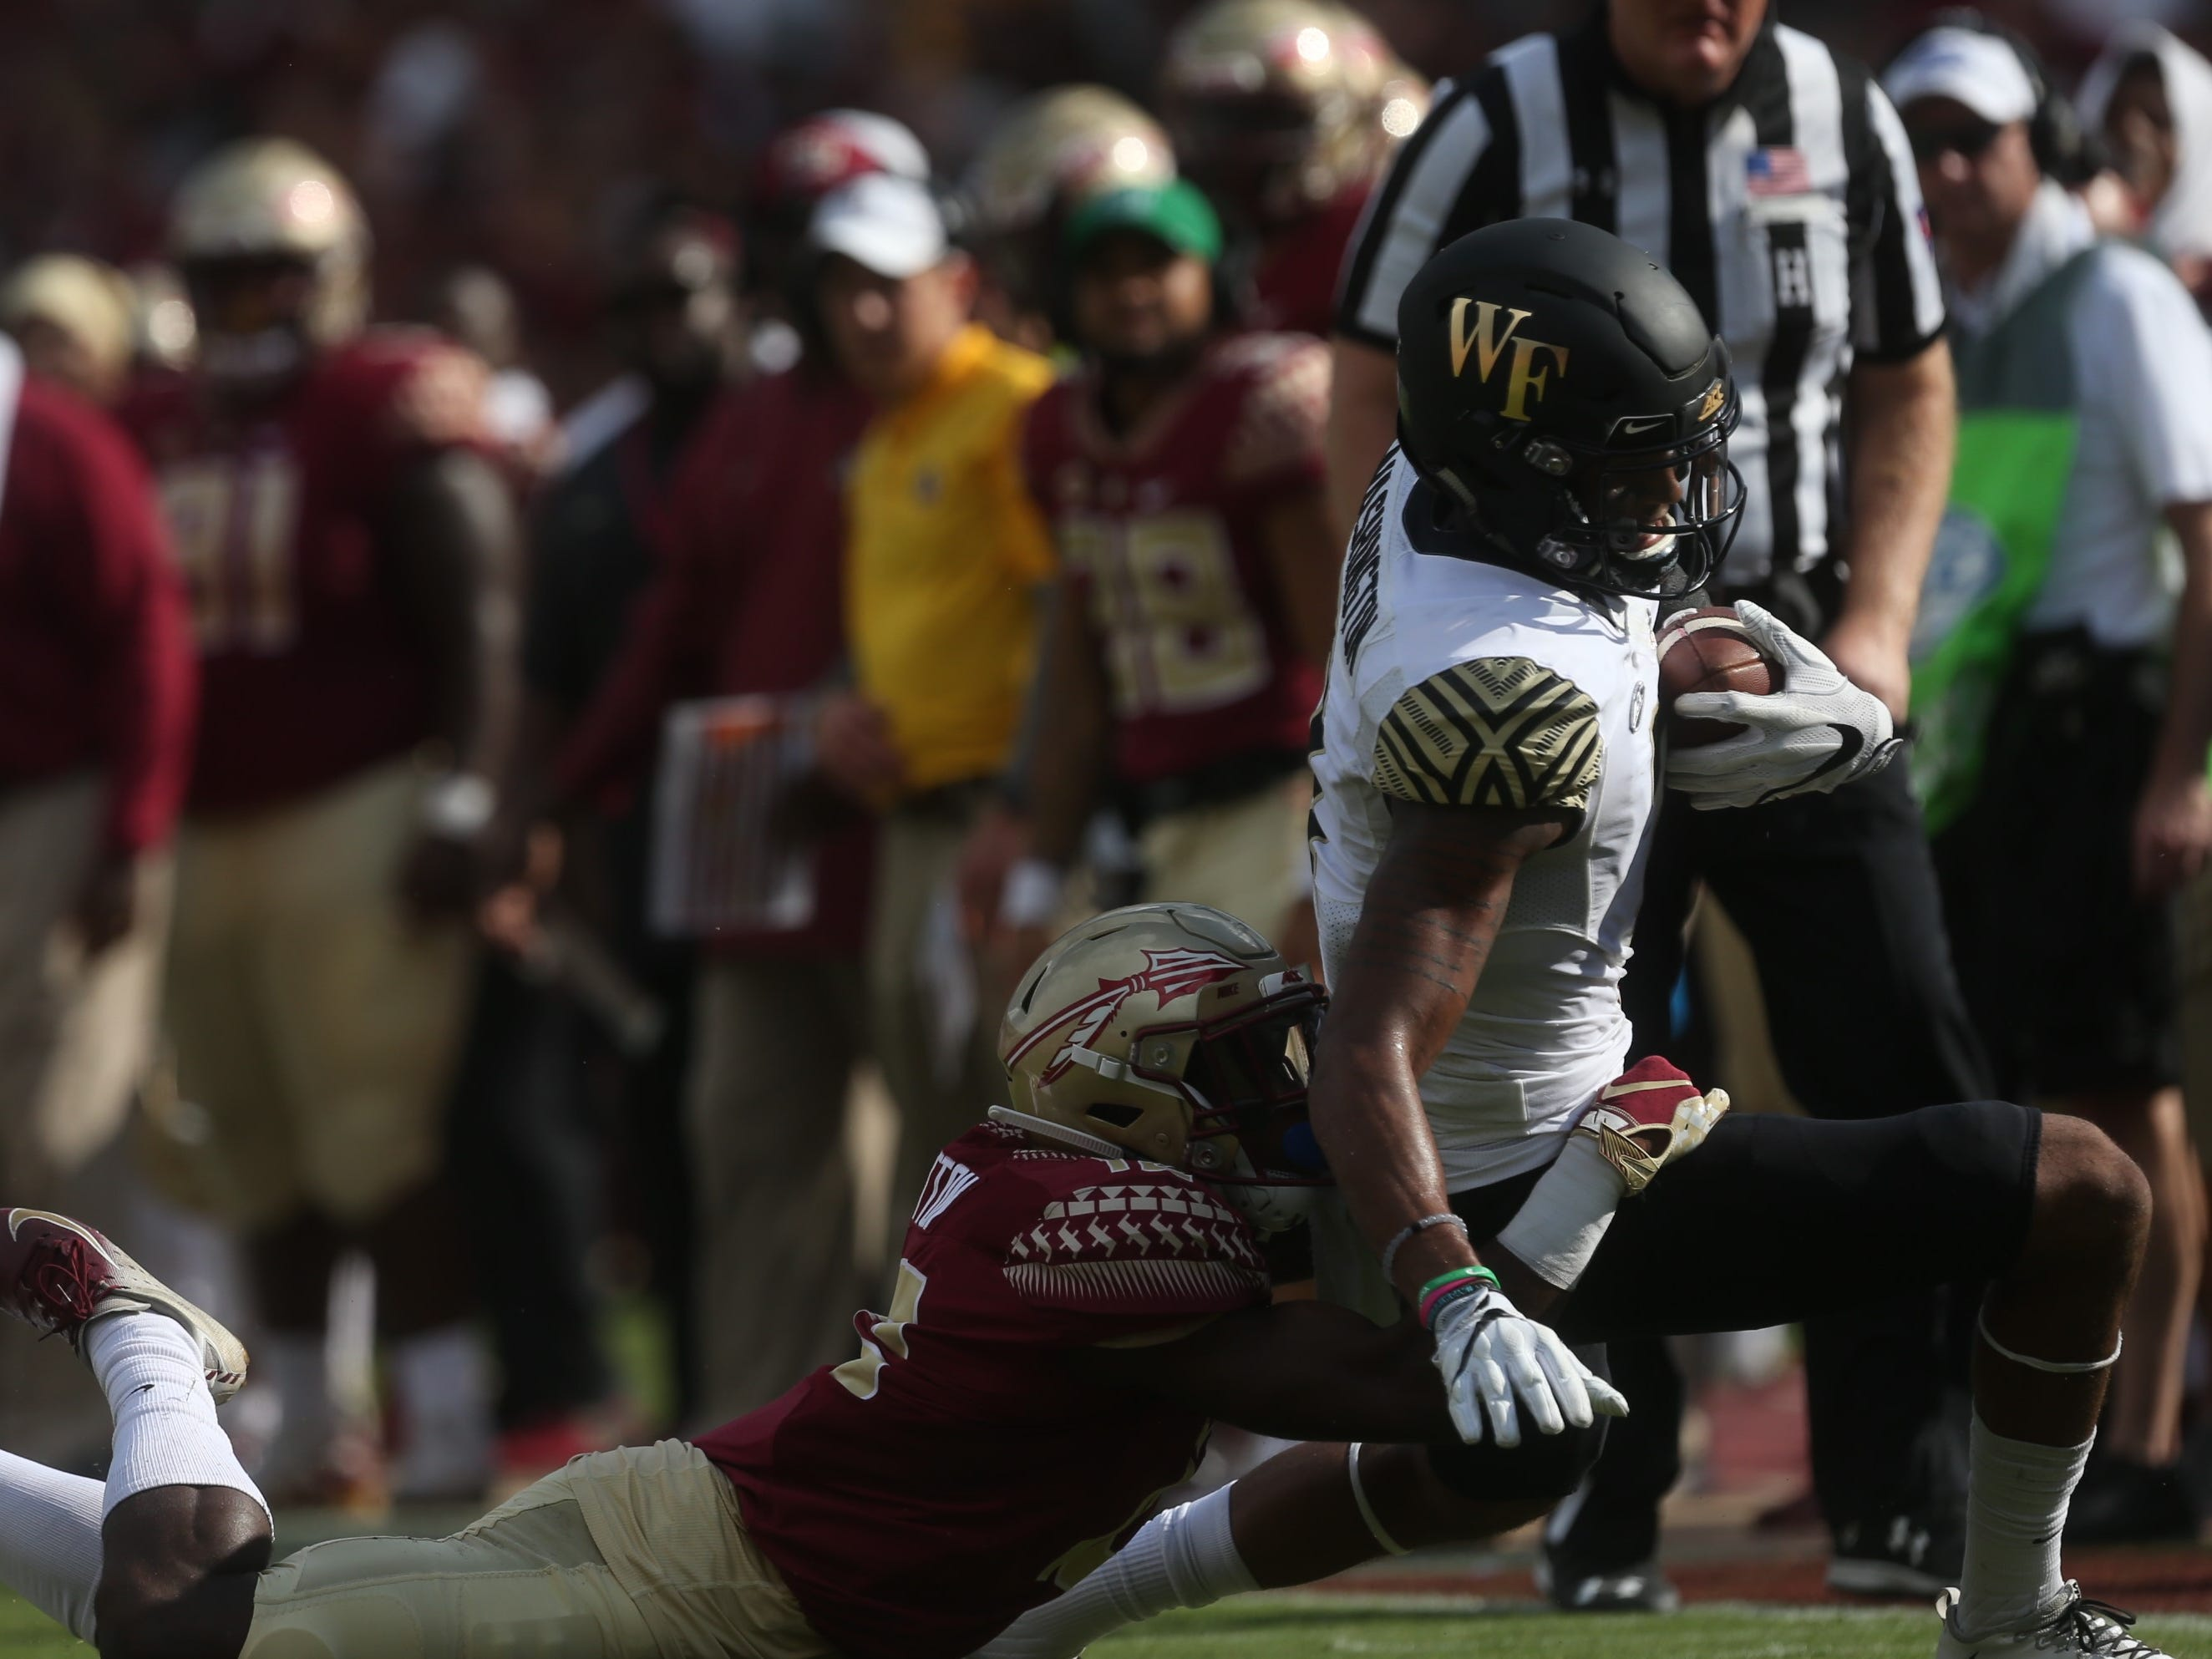 Florida State defensive back A.J. Lytton brings down Wake Forest receiver Scott Washington along the boundary during a game at Doak Campbell Stadium on Saturday, Oct. 20, 2018.